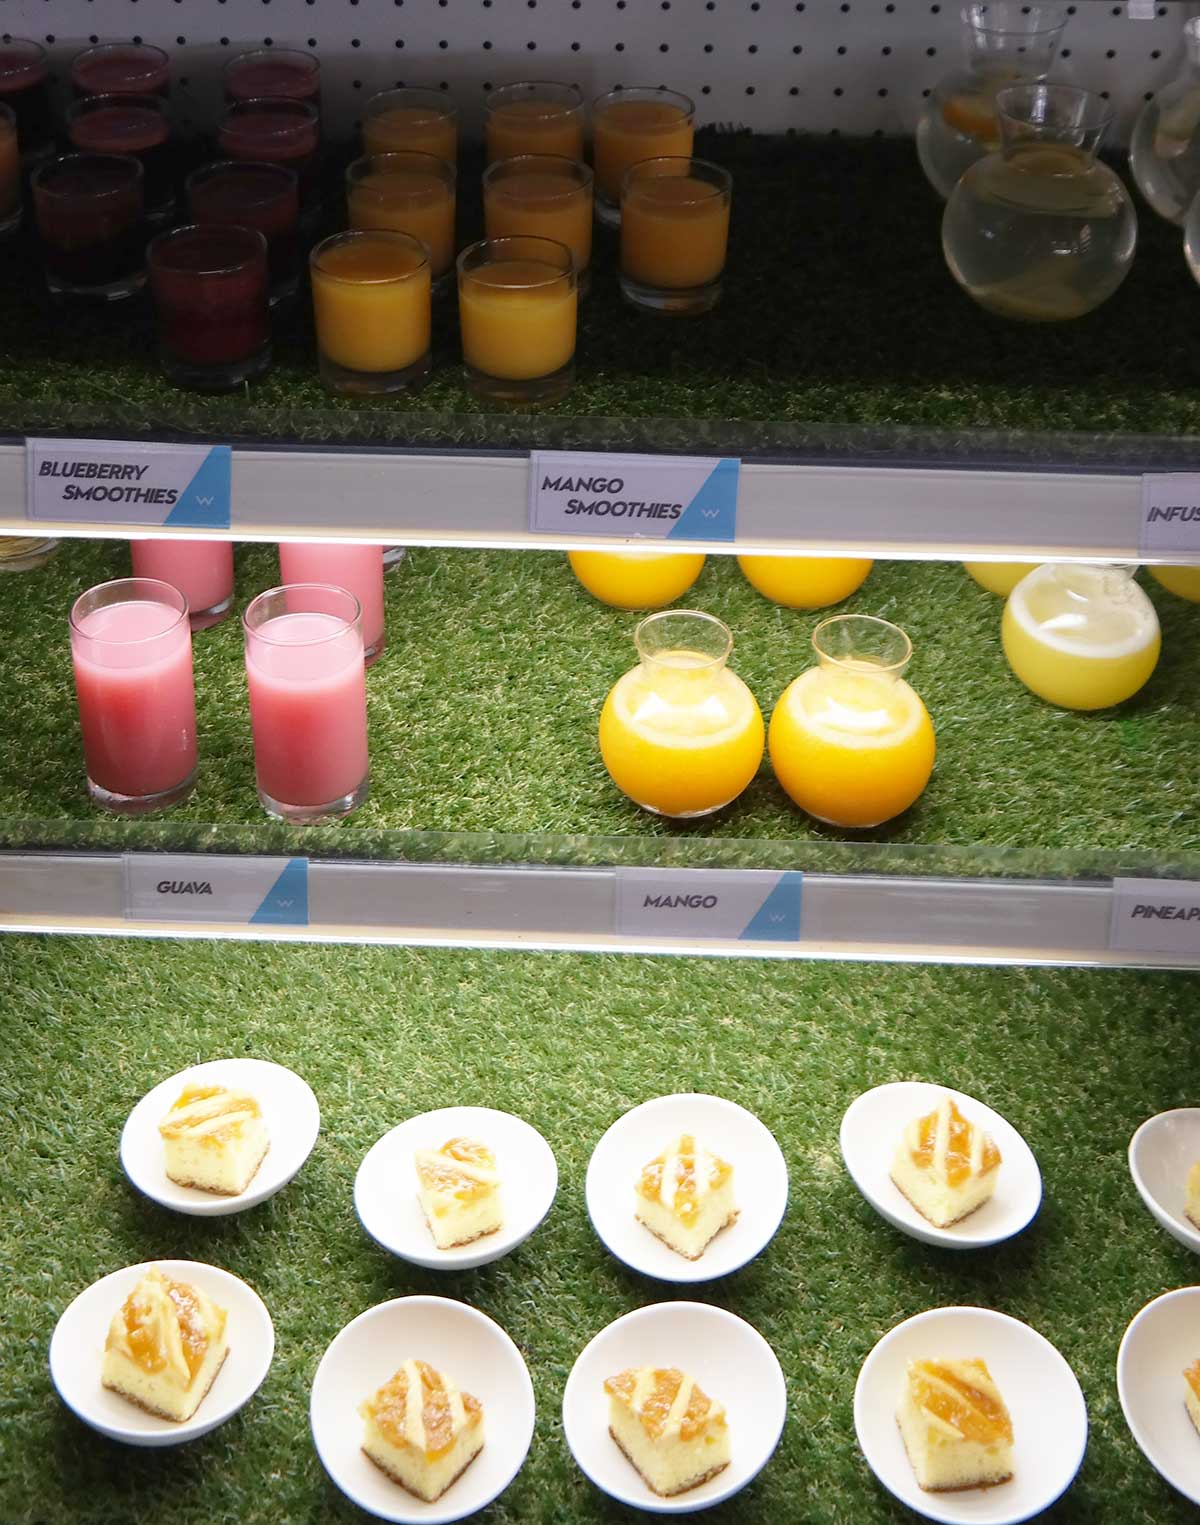 mangi smoothies for breakfast at the W bali seminyak